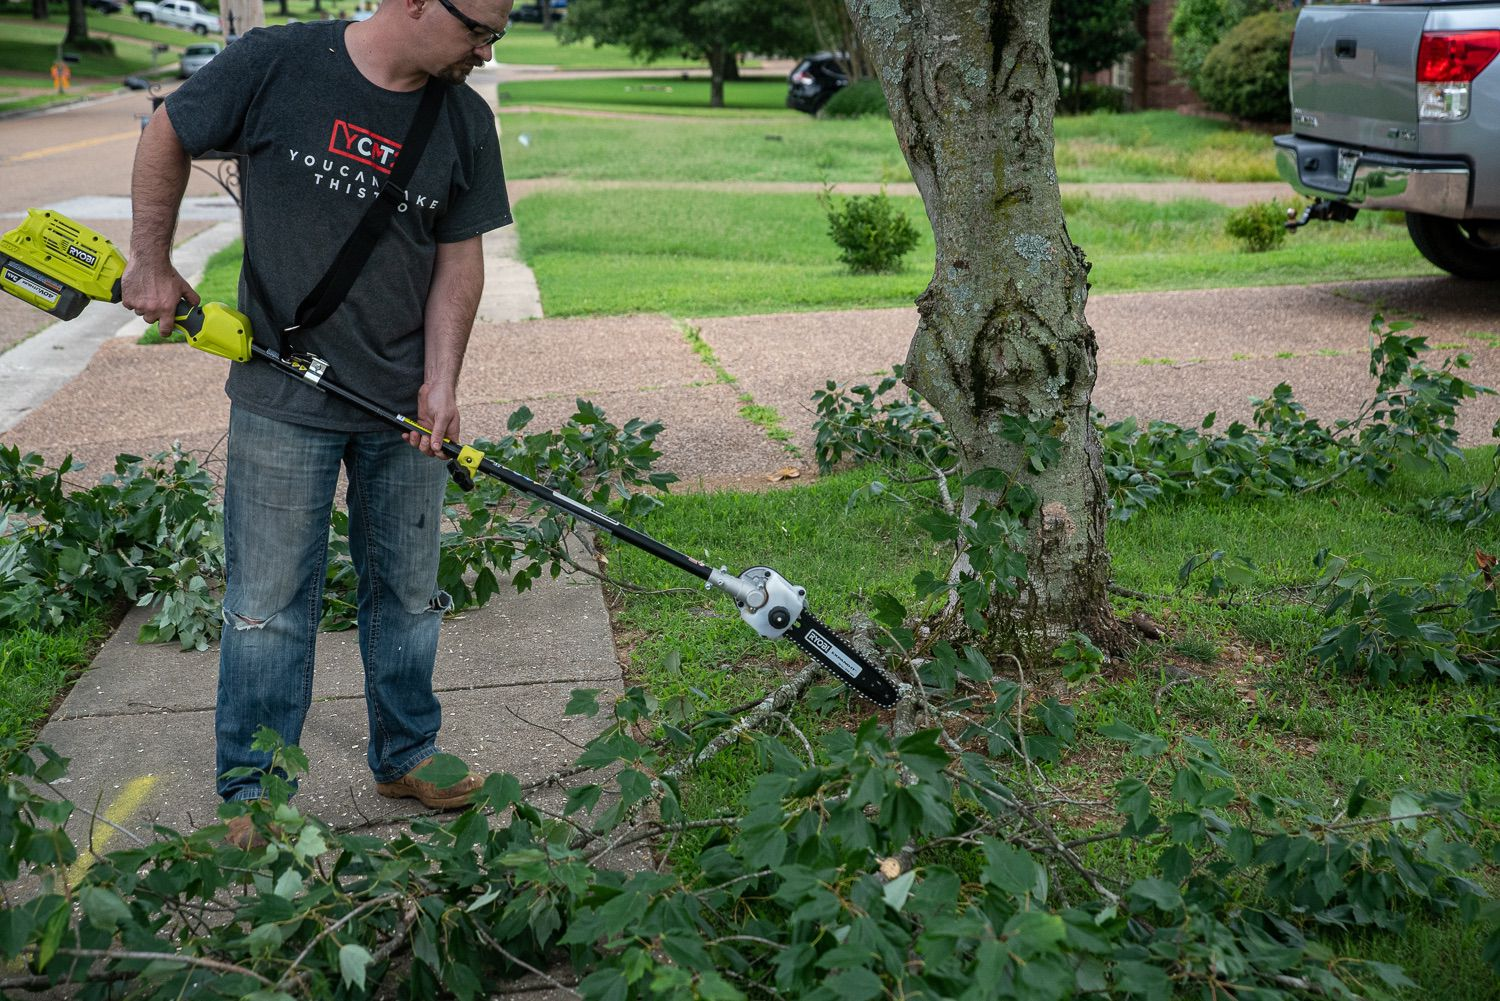 Ryobi Expand-It Pole Saw bucking limbs without the extension pole